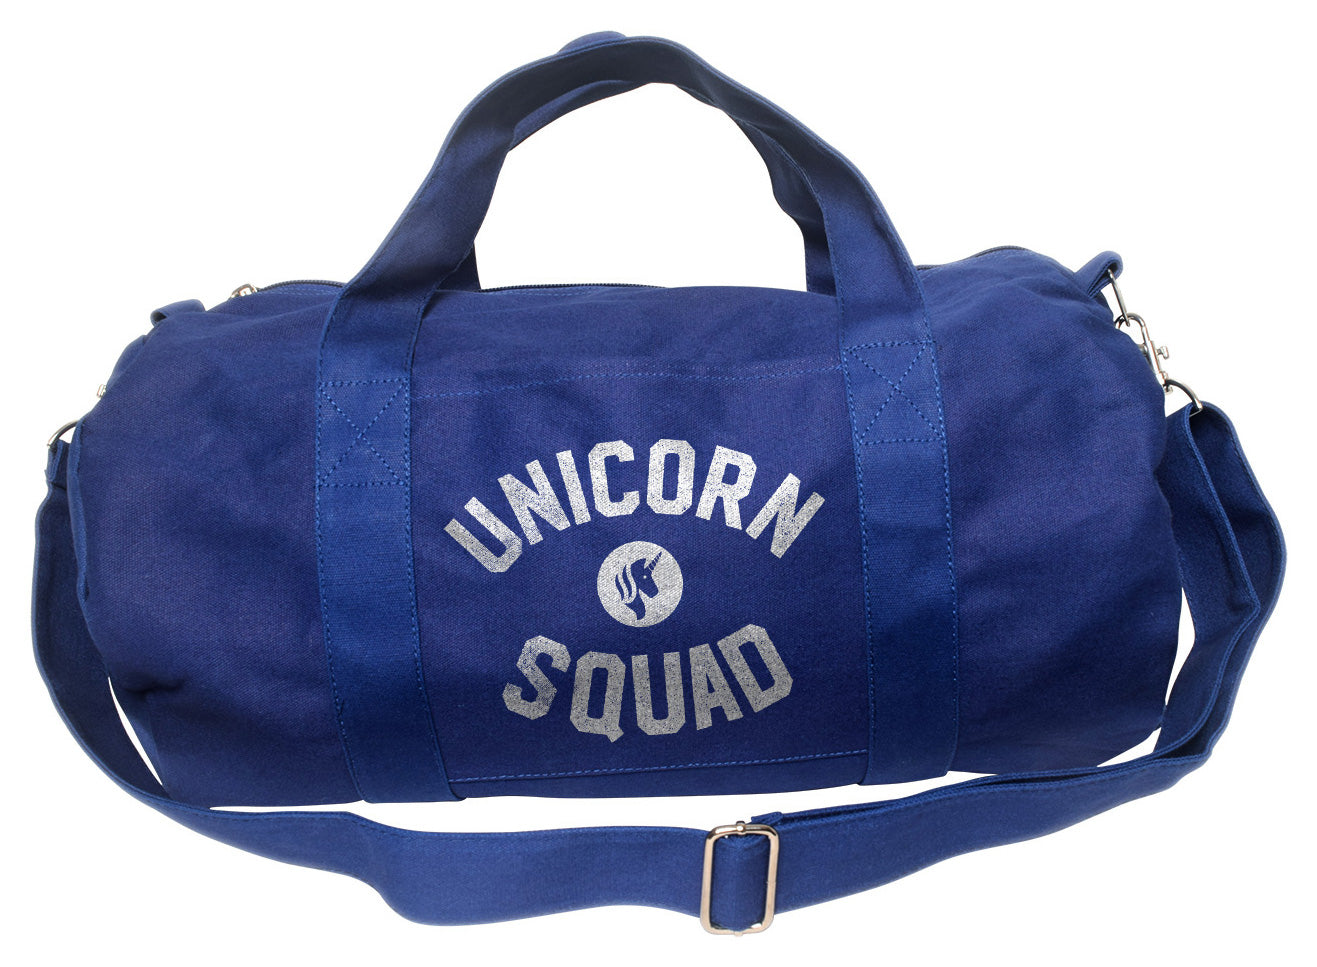 Unicorn Squad Duffel Bag